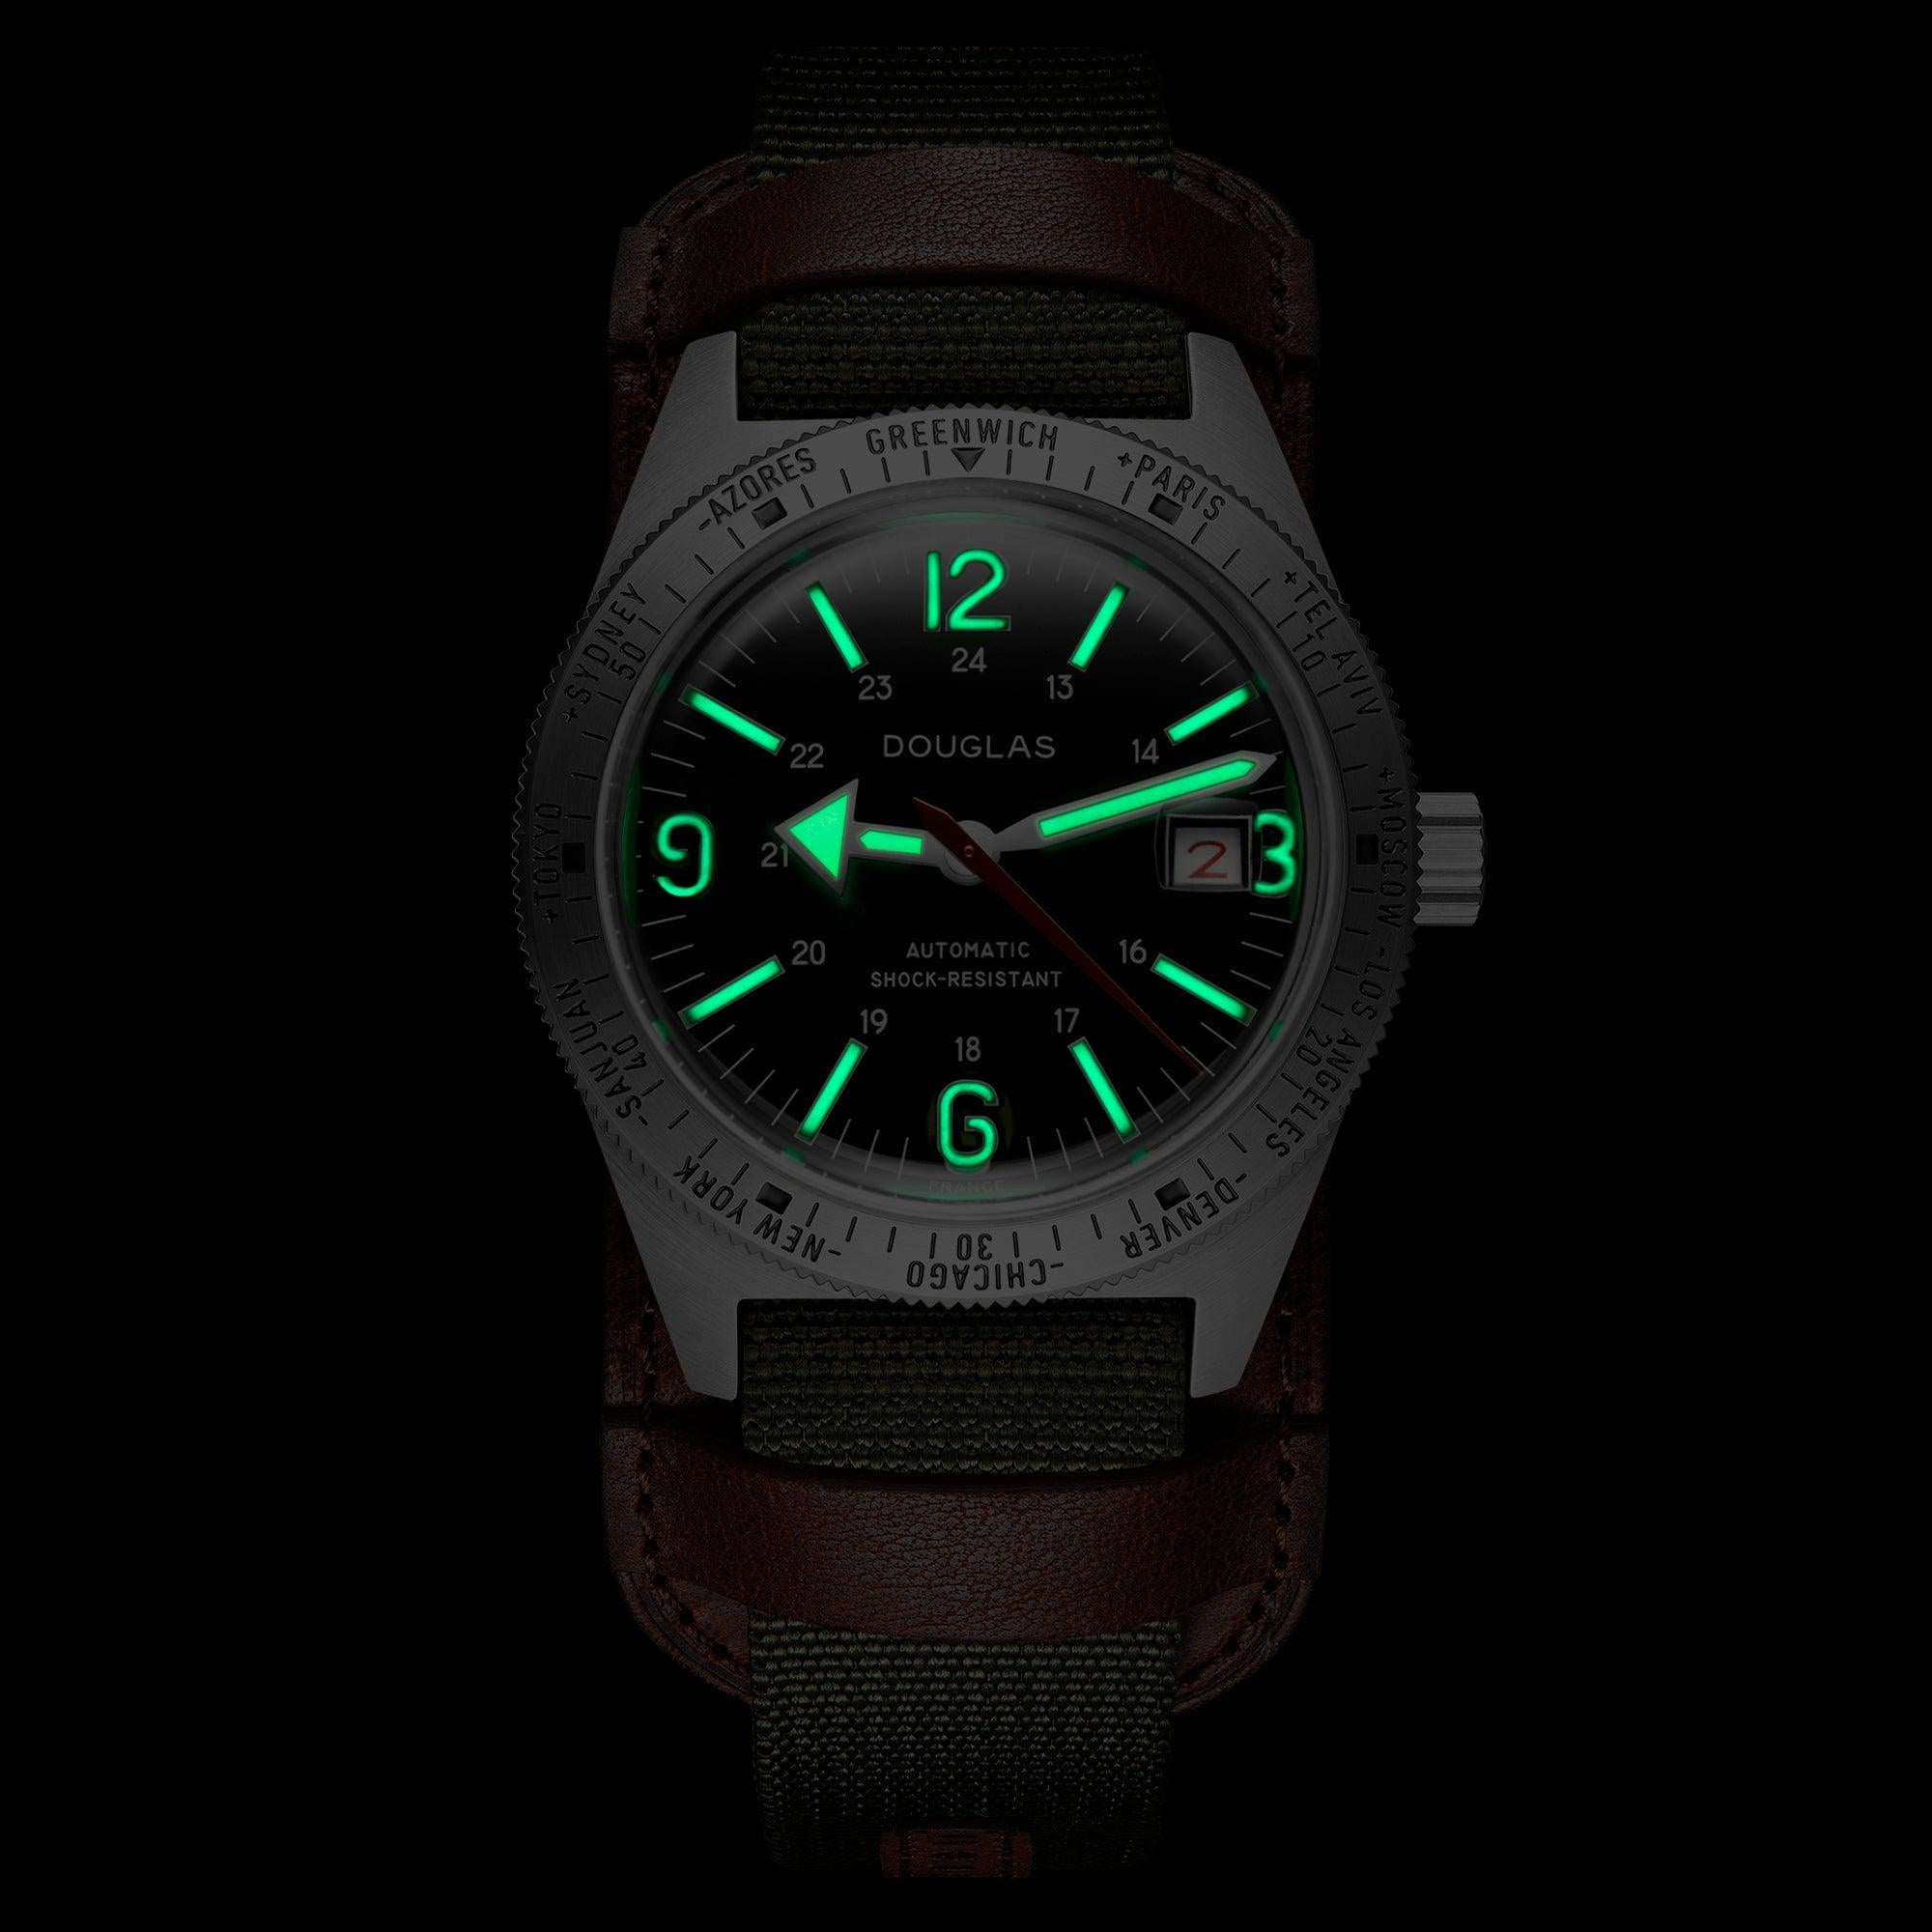 Skindiver WT Professional Tool-Watch with Black Dial and Green C7 Super-LumiNova on